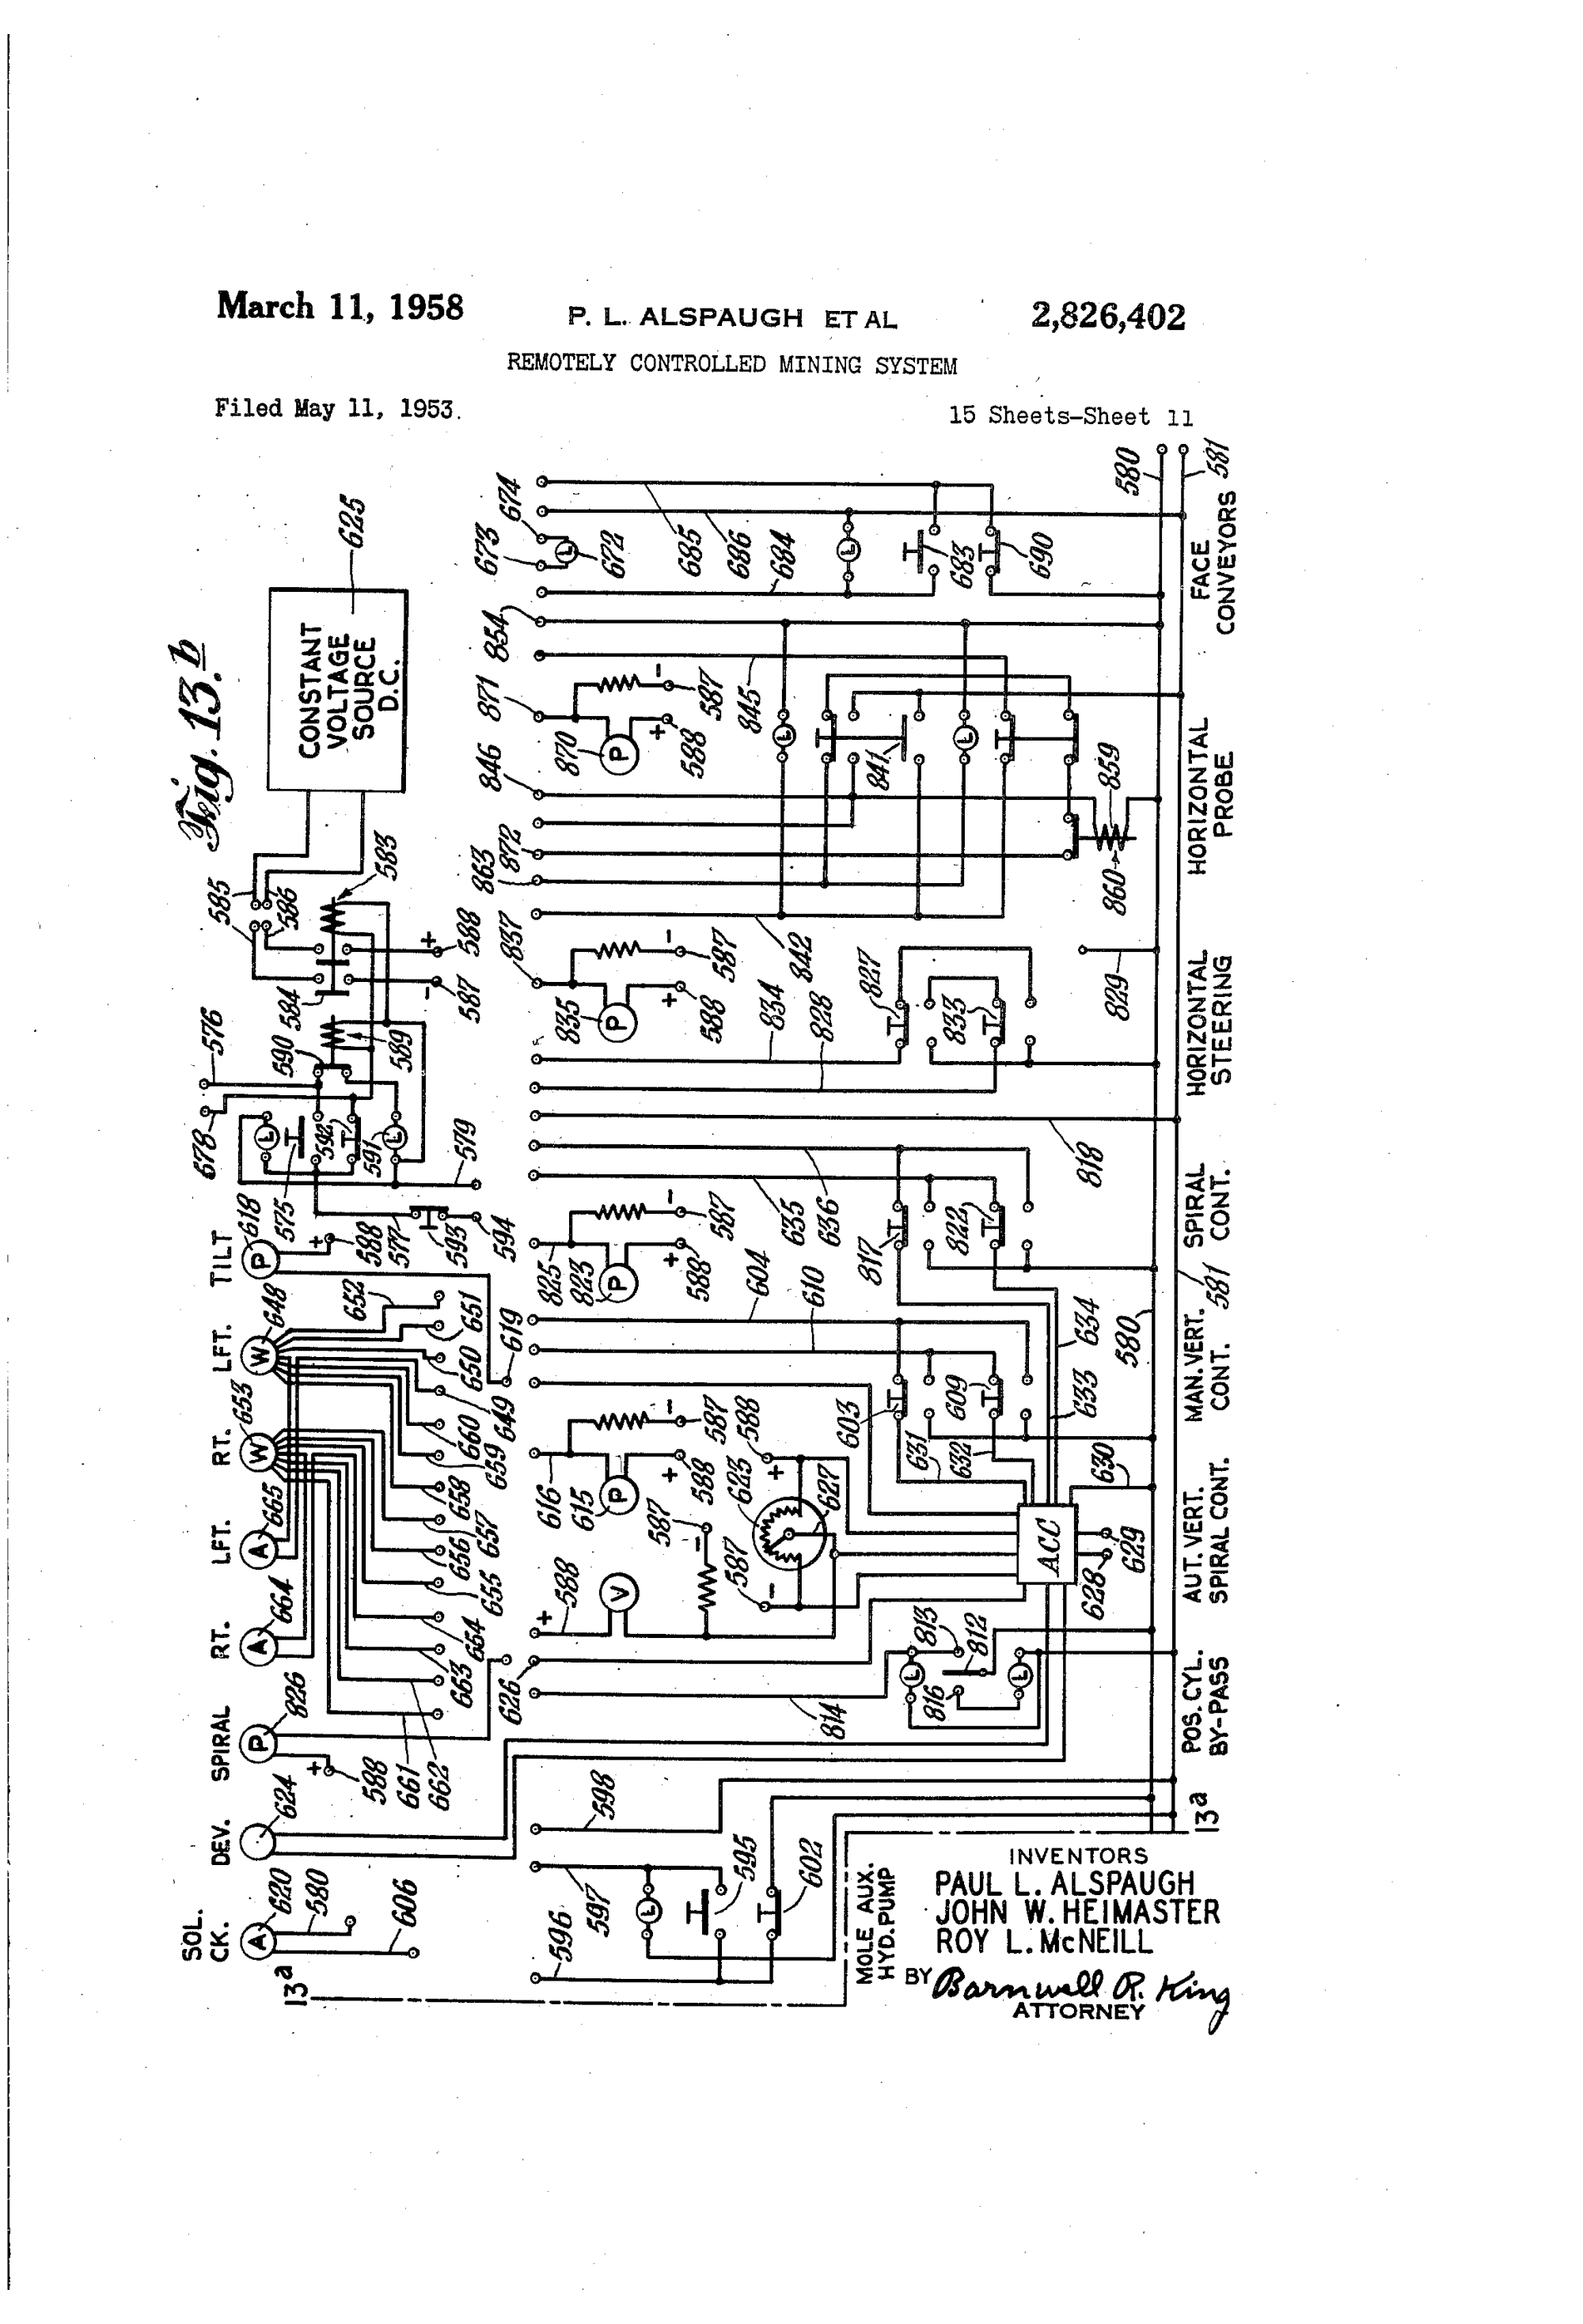 hight resolution of ih 584 wiring diagram wiring diagrams international 574 hydraulic schematic 1845c wiring diagram case 440ct skid